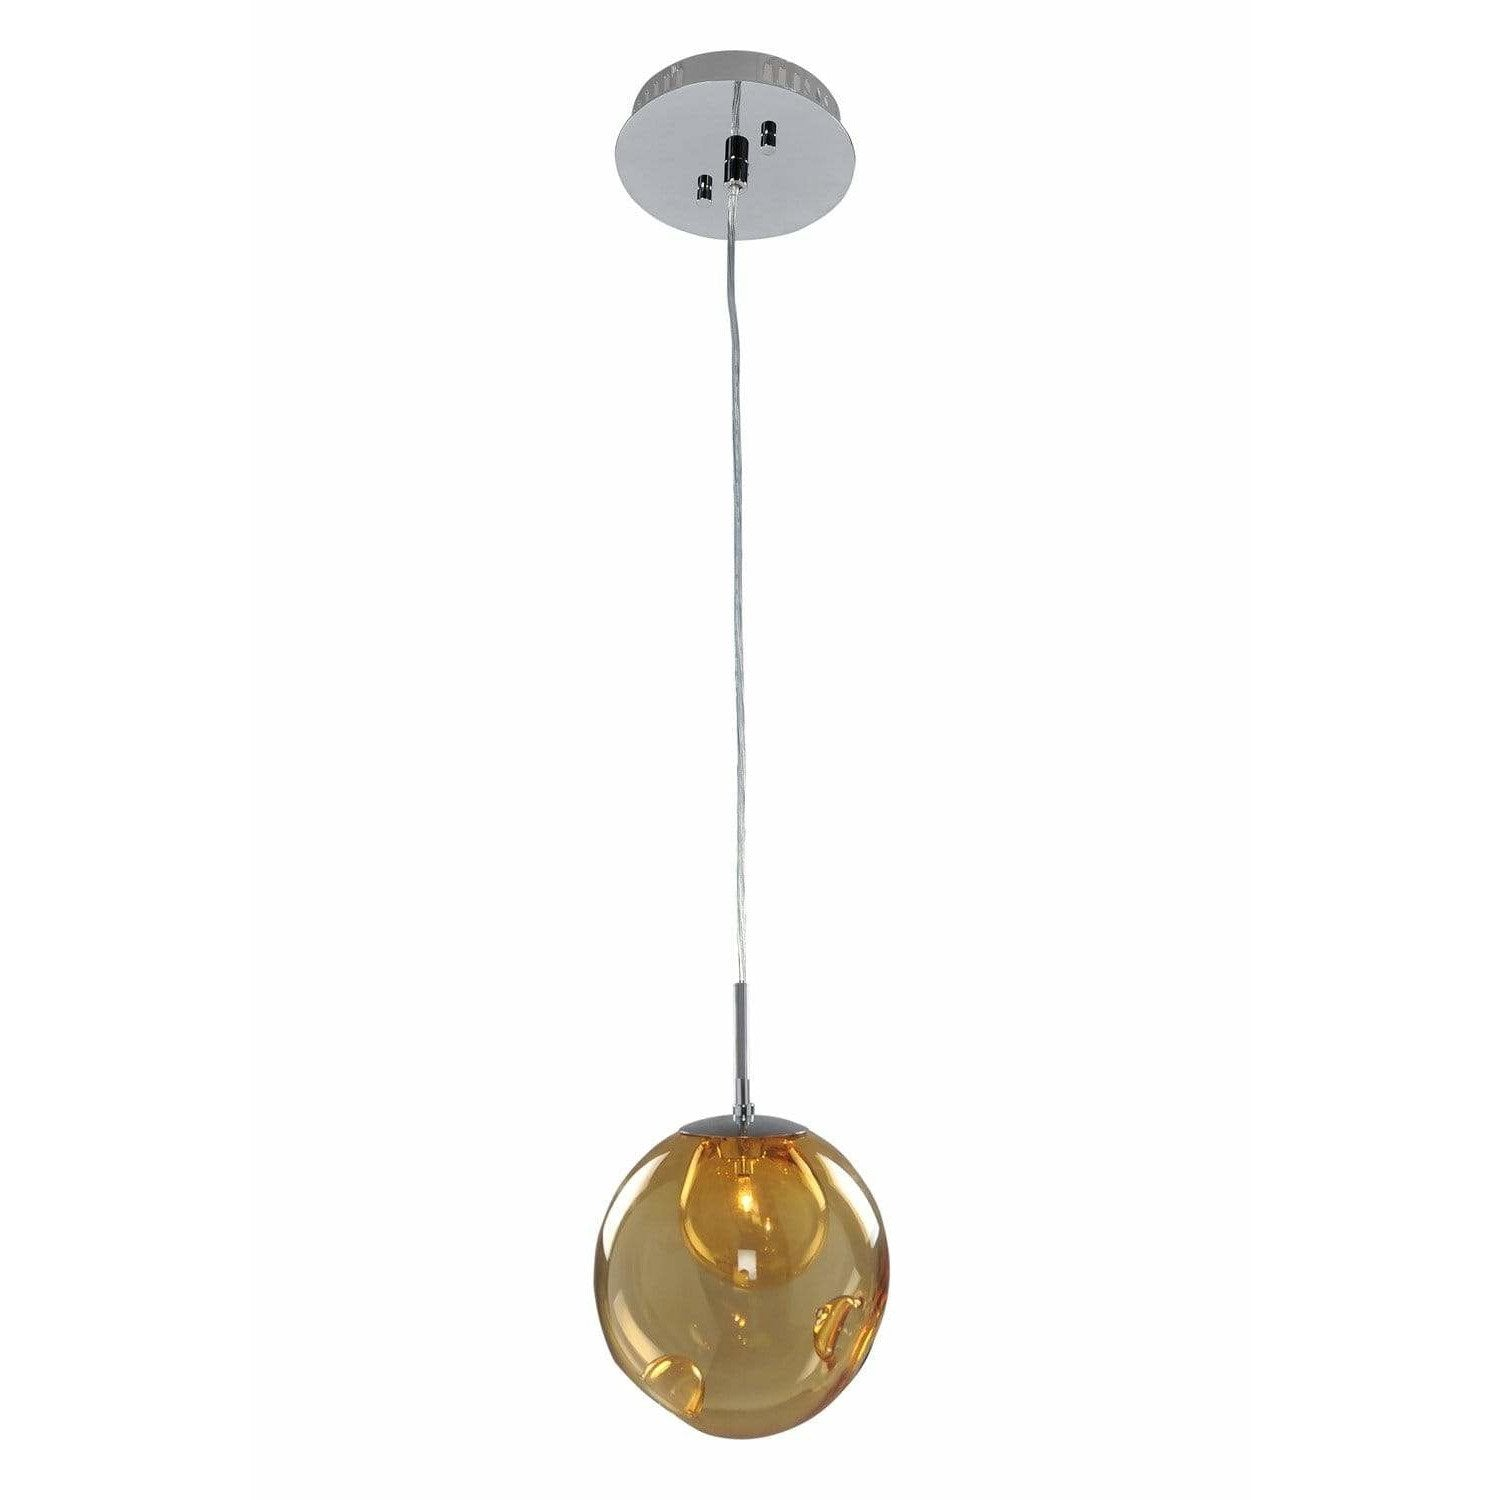 Kalco Lighting Mini Pendants Chrome / Faux Calcite Standard Amber Glass Meteor 1 Light Mini Pendant By Kalco Lighting 309510